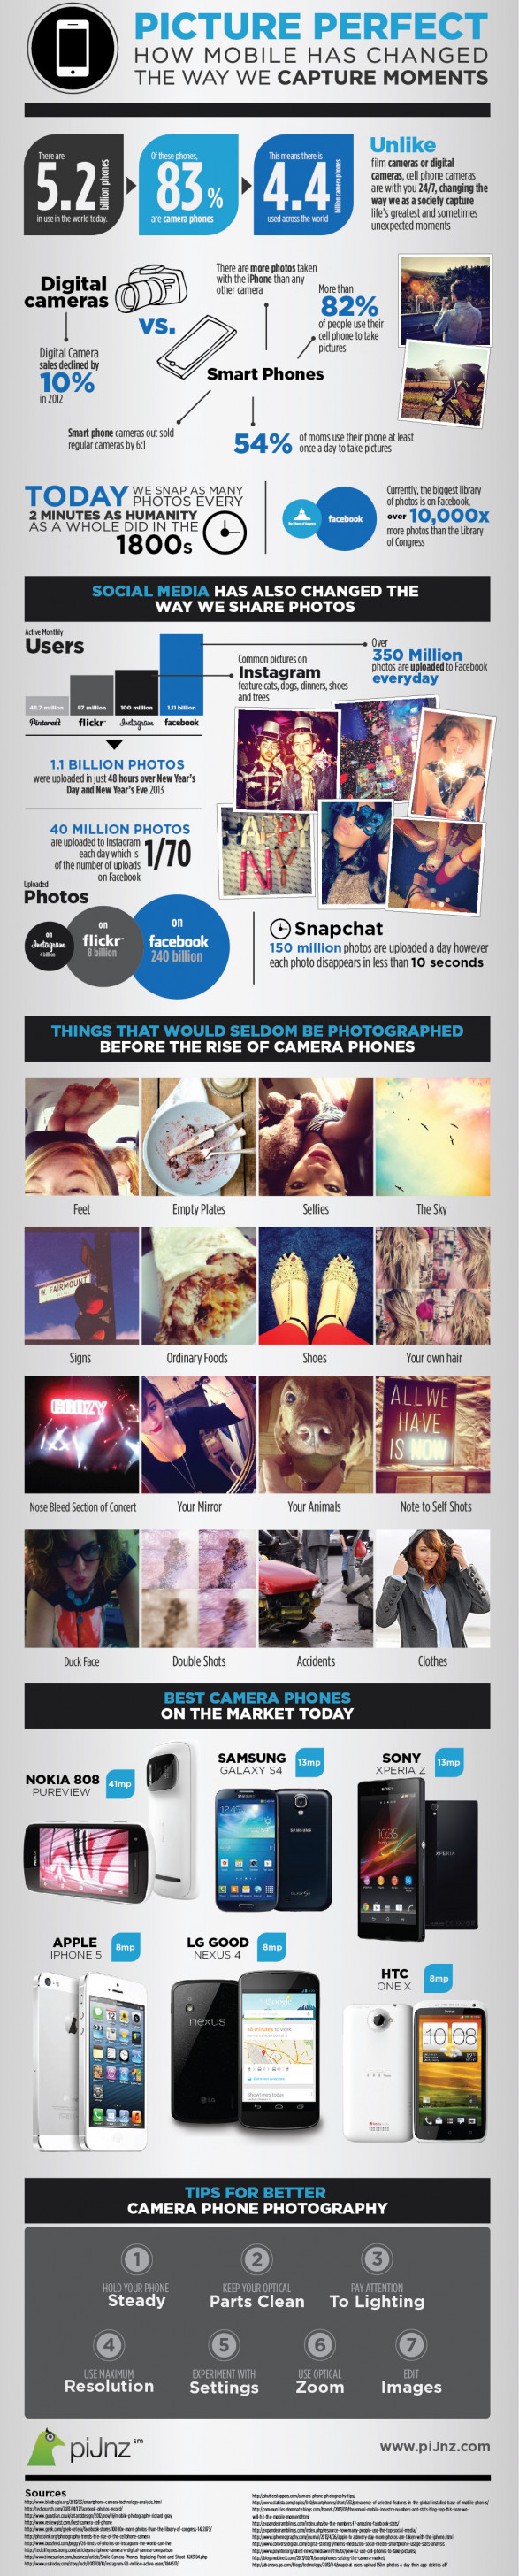 Picture Perfect - How Mobile Has Changed the Way We Capture Moments